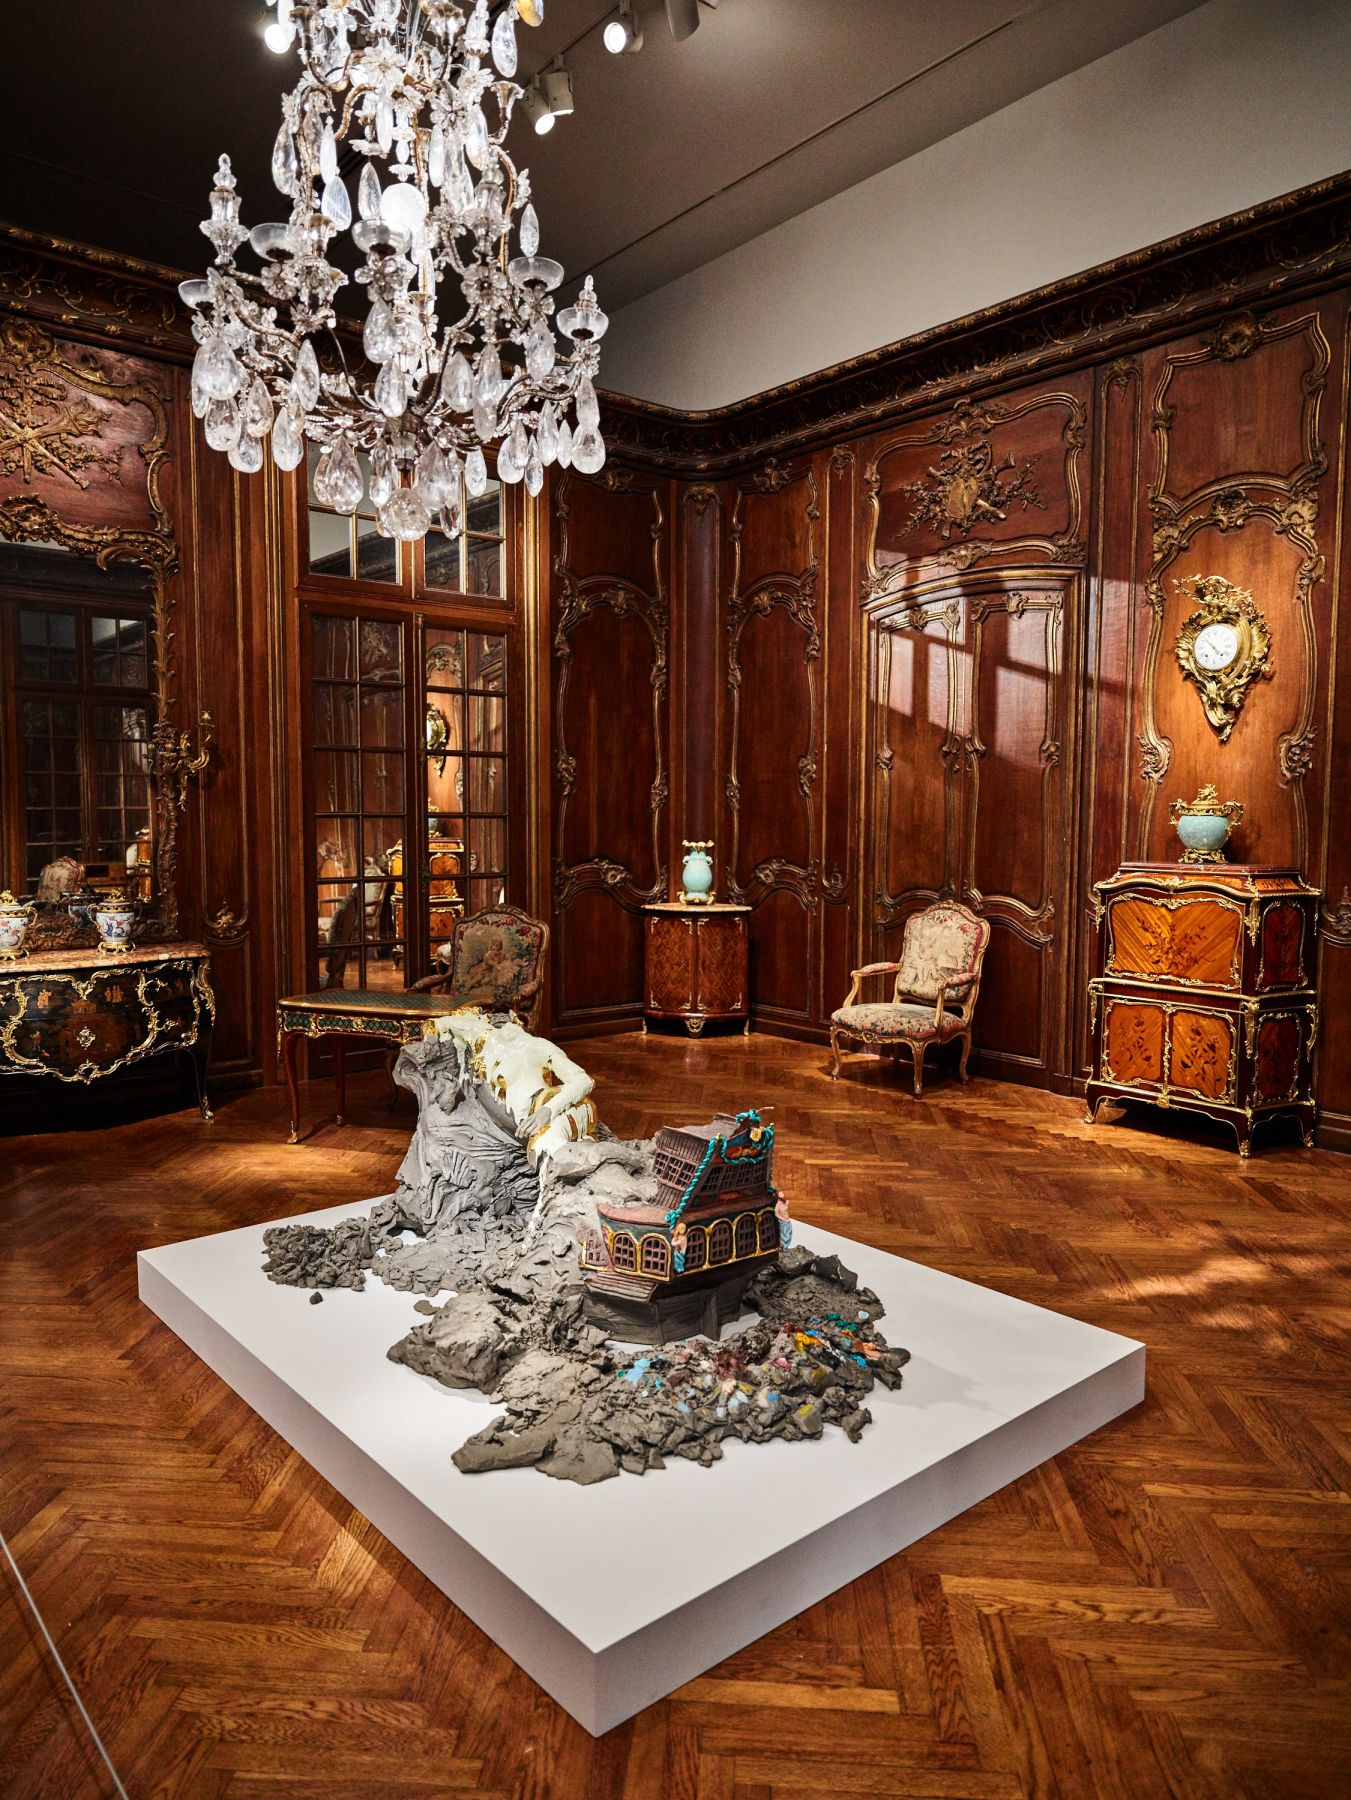 Installation view, Urs Fischer: The Public and the Private, Fine Arts Museums of San Francisco, Legion of Honor Museum, California, 2017